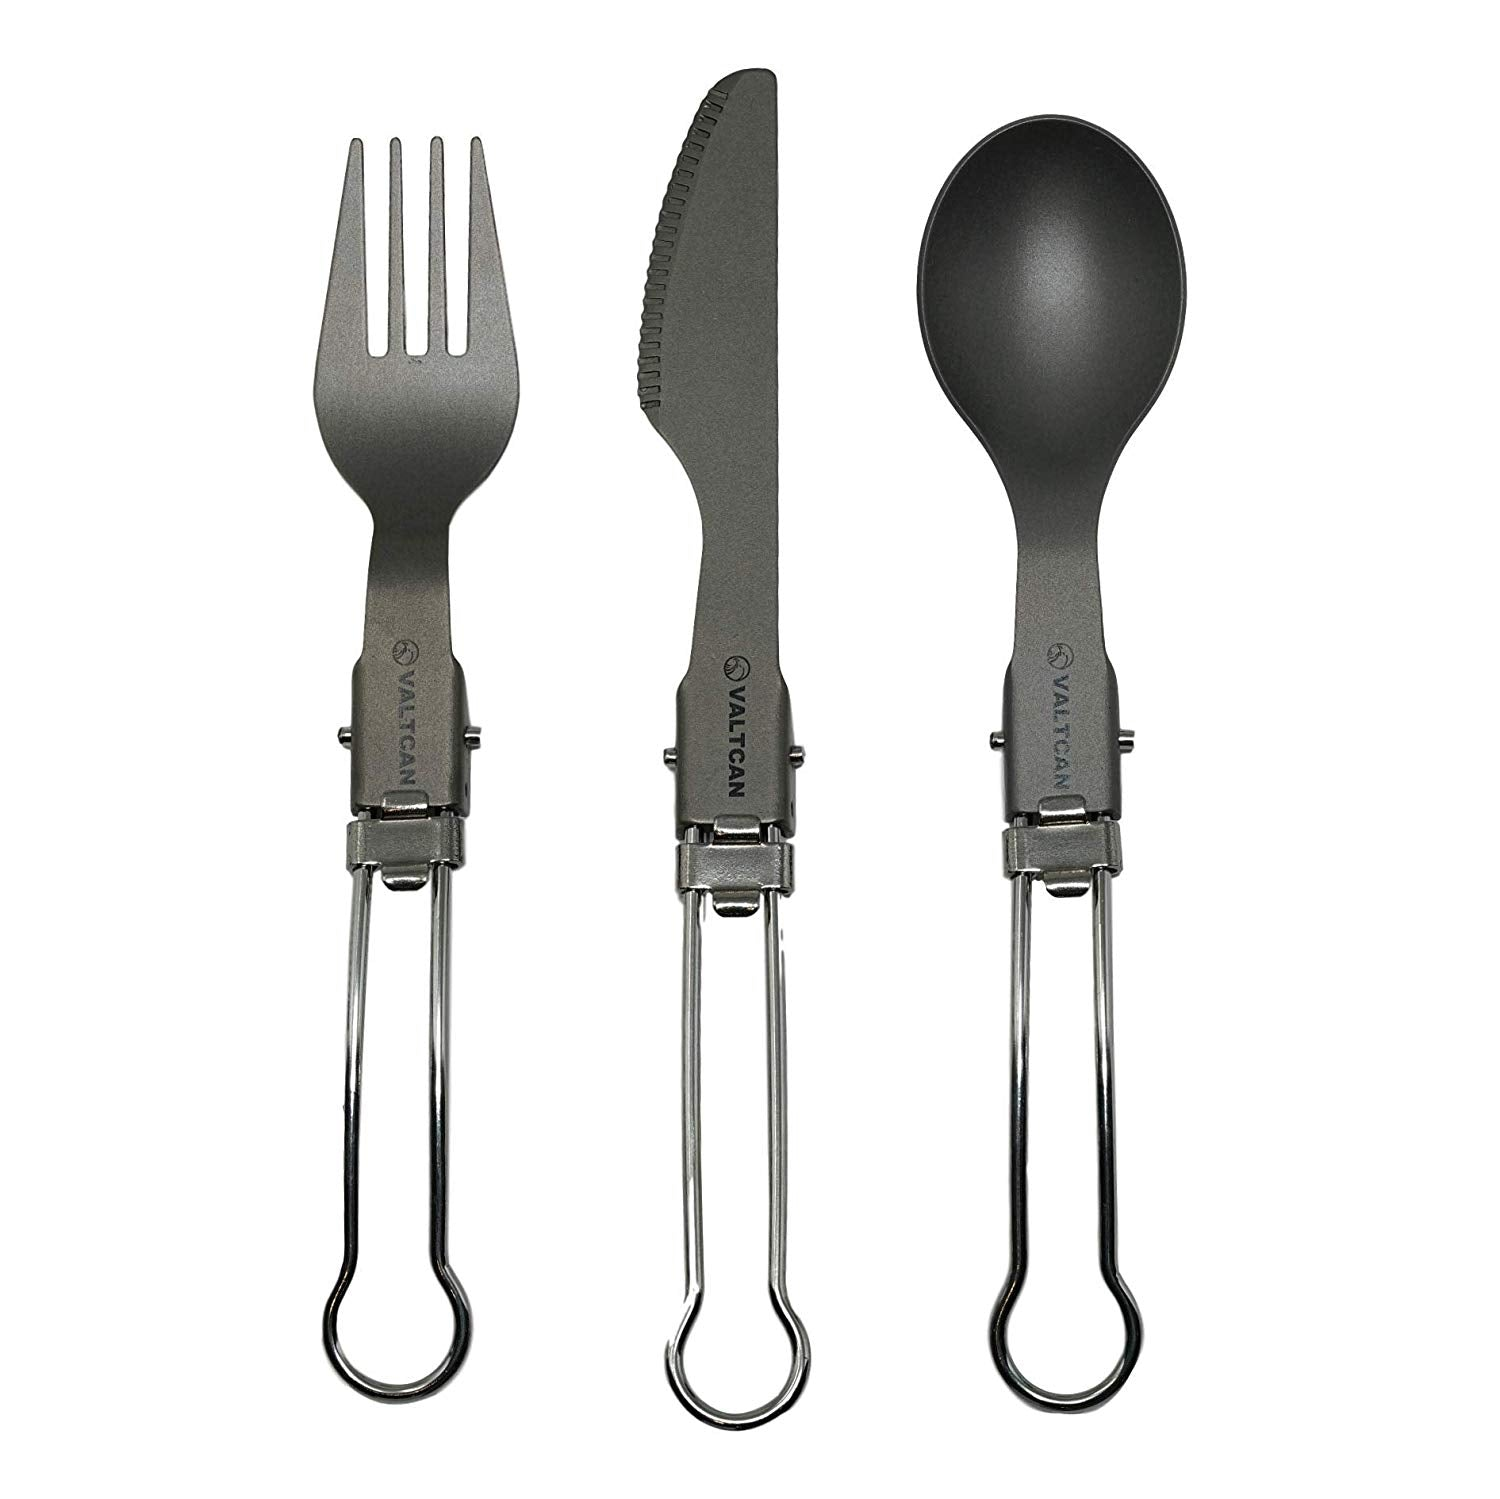 Valtcan Titanium EDC Folding Cutlery 3 Piece Utensil Set